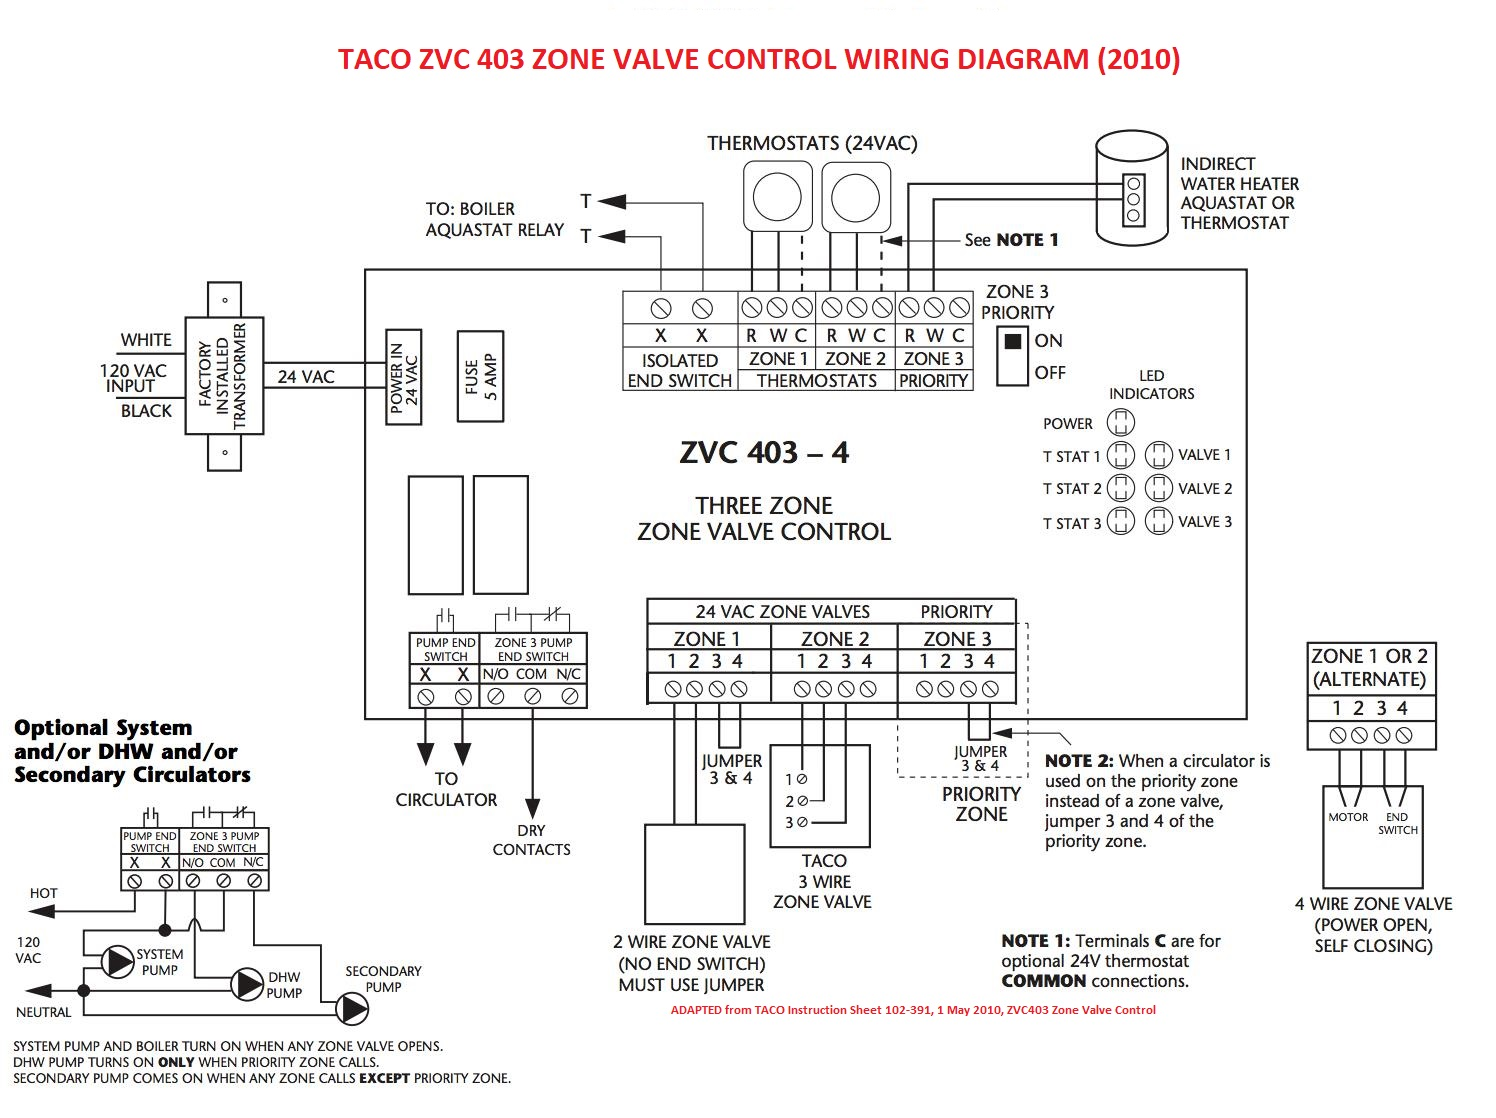 yokoyama control transformer wiring diagram 6 circle writable venn example 8 22 kenmo lp de images gallery